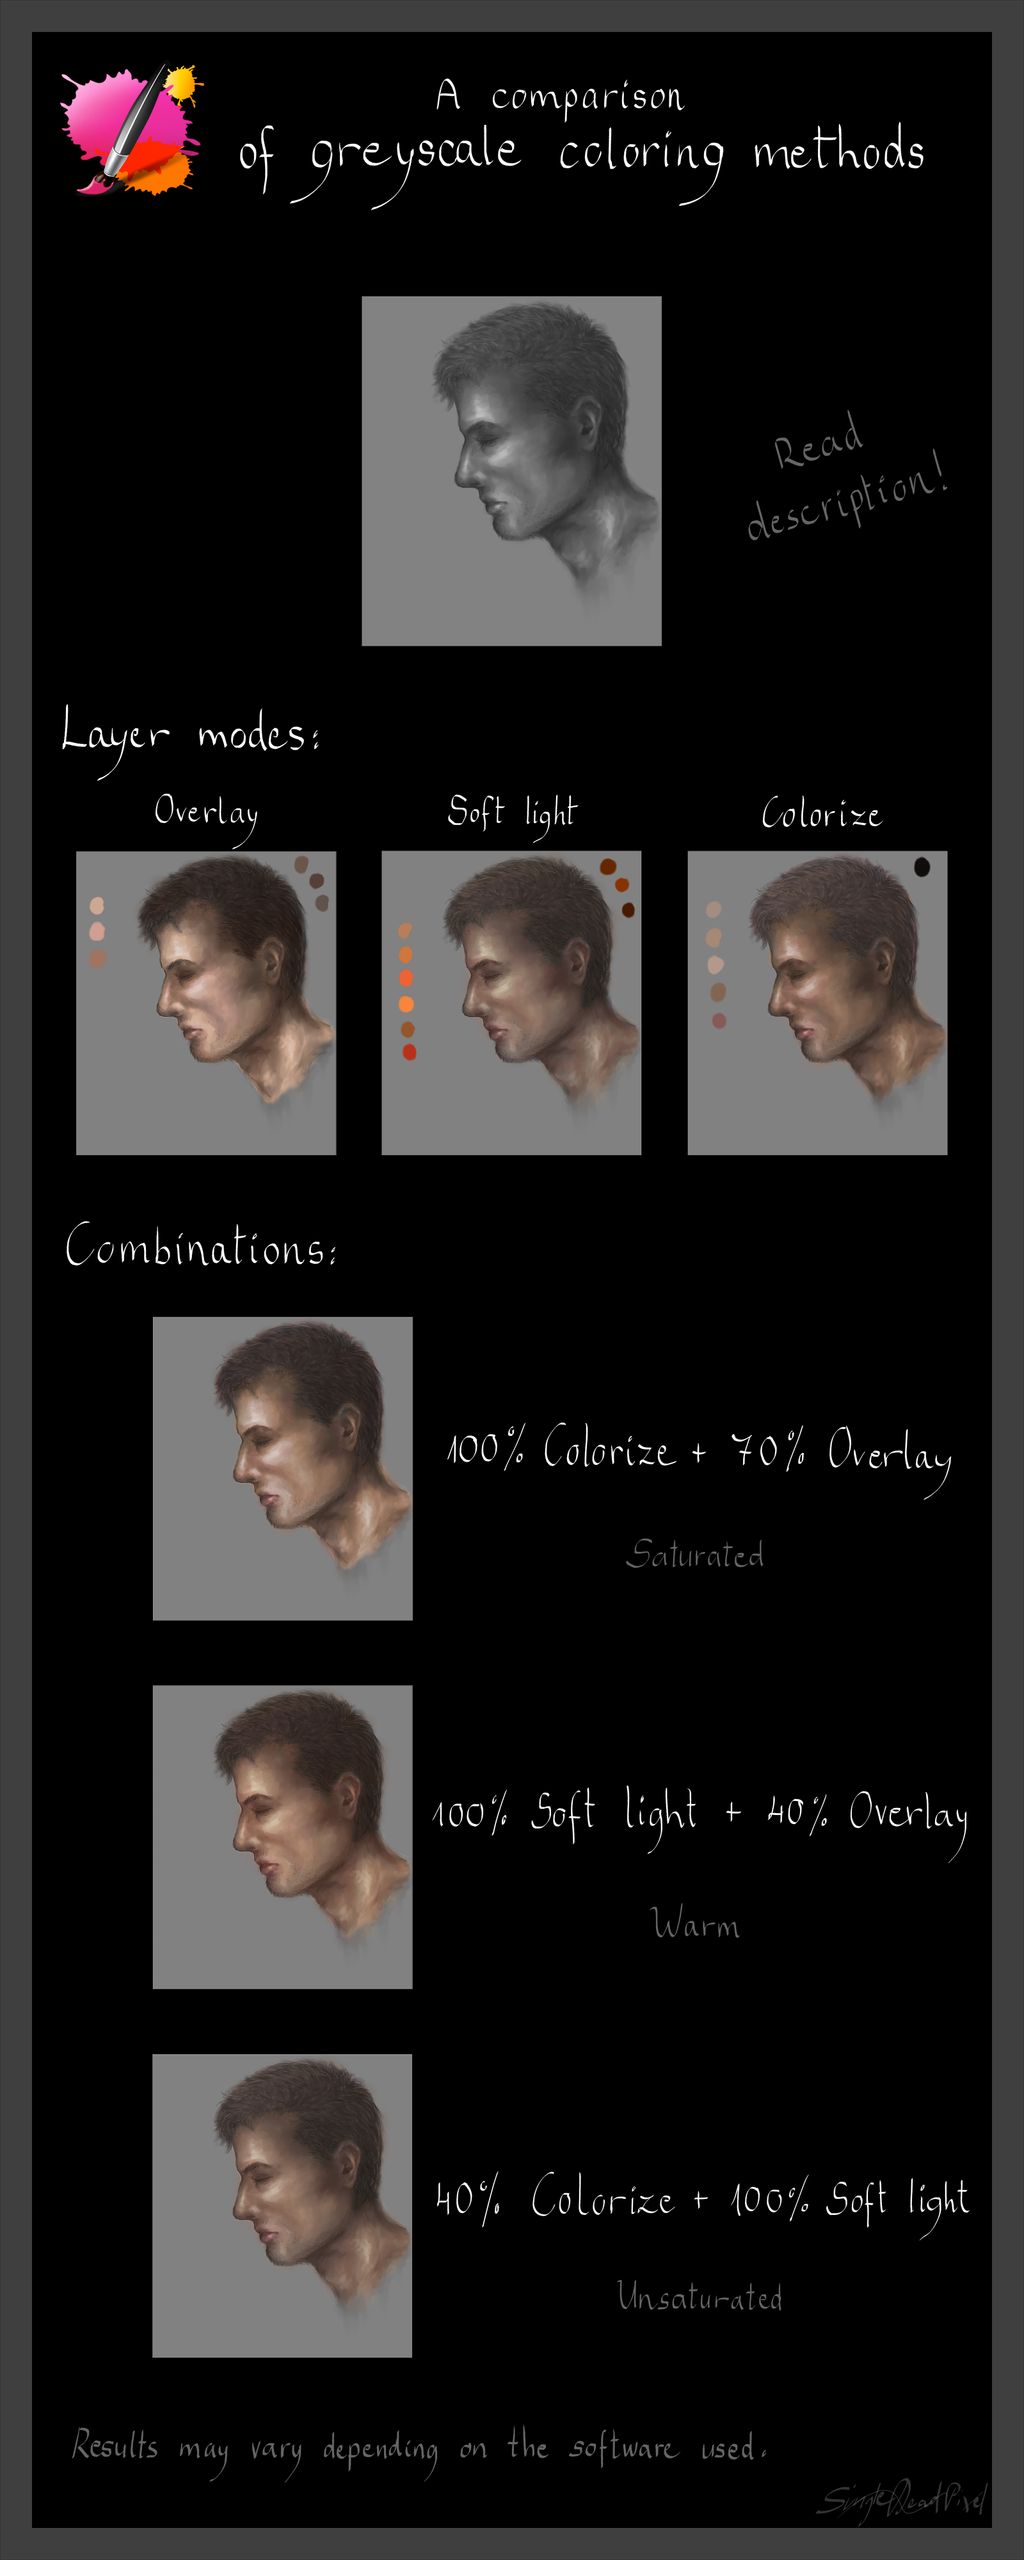 Comparison of Greyscale Coloring Methods by SingleDeadPixel